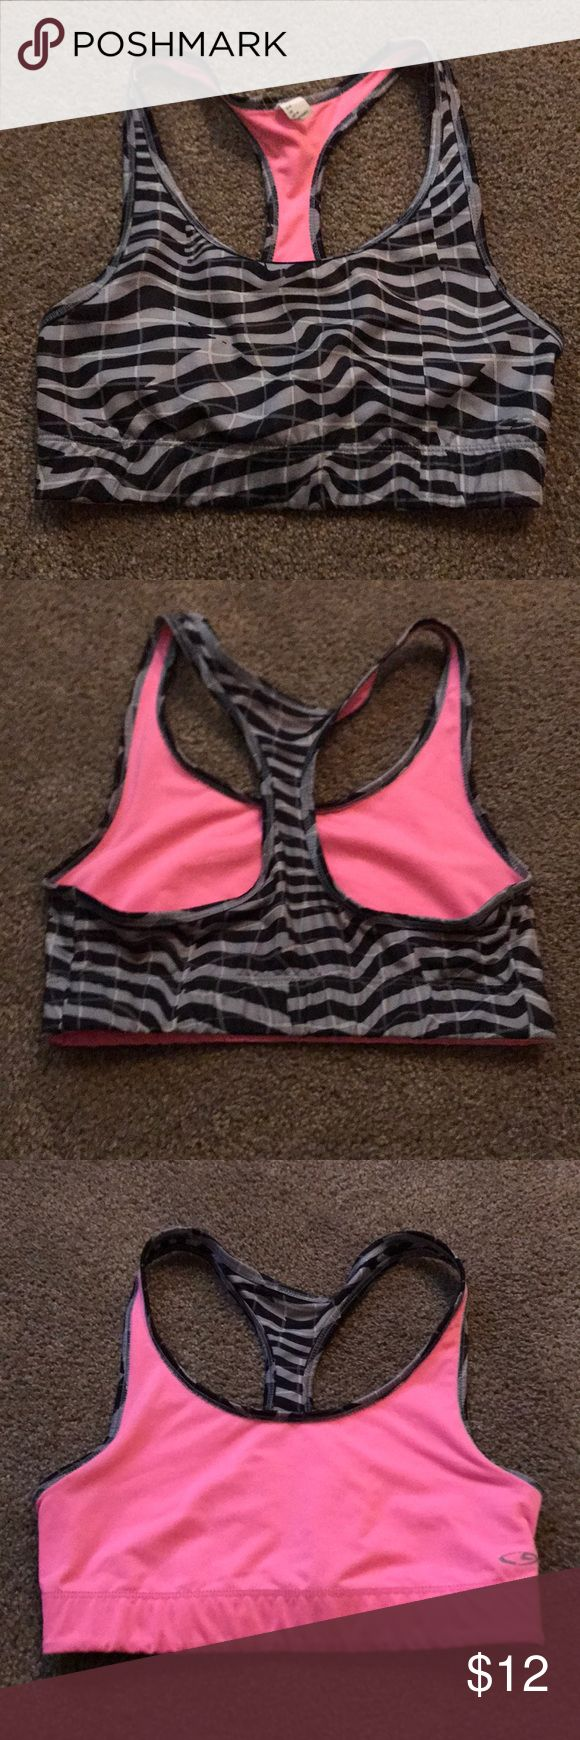 Reversible sports bra Great condition, size M. Champion brand. Reversible! Perfect for workouts. Champion Intimates & Sleepwear Bras